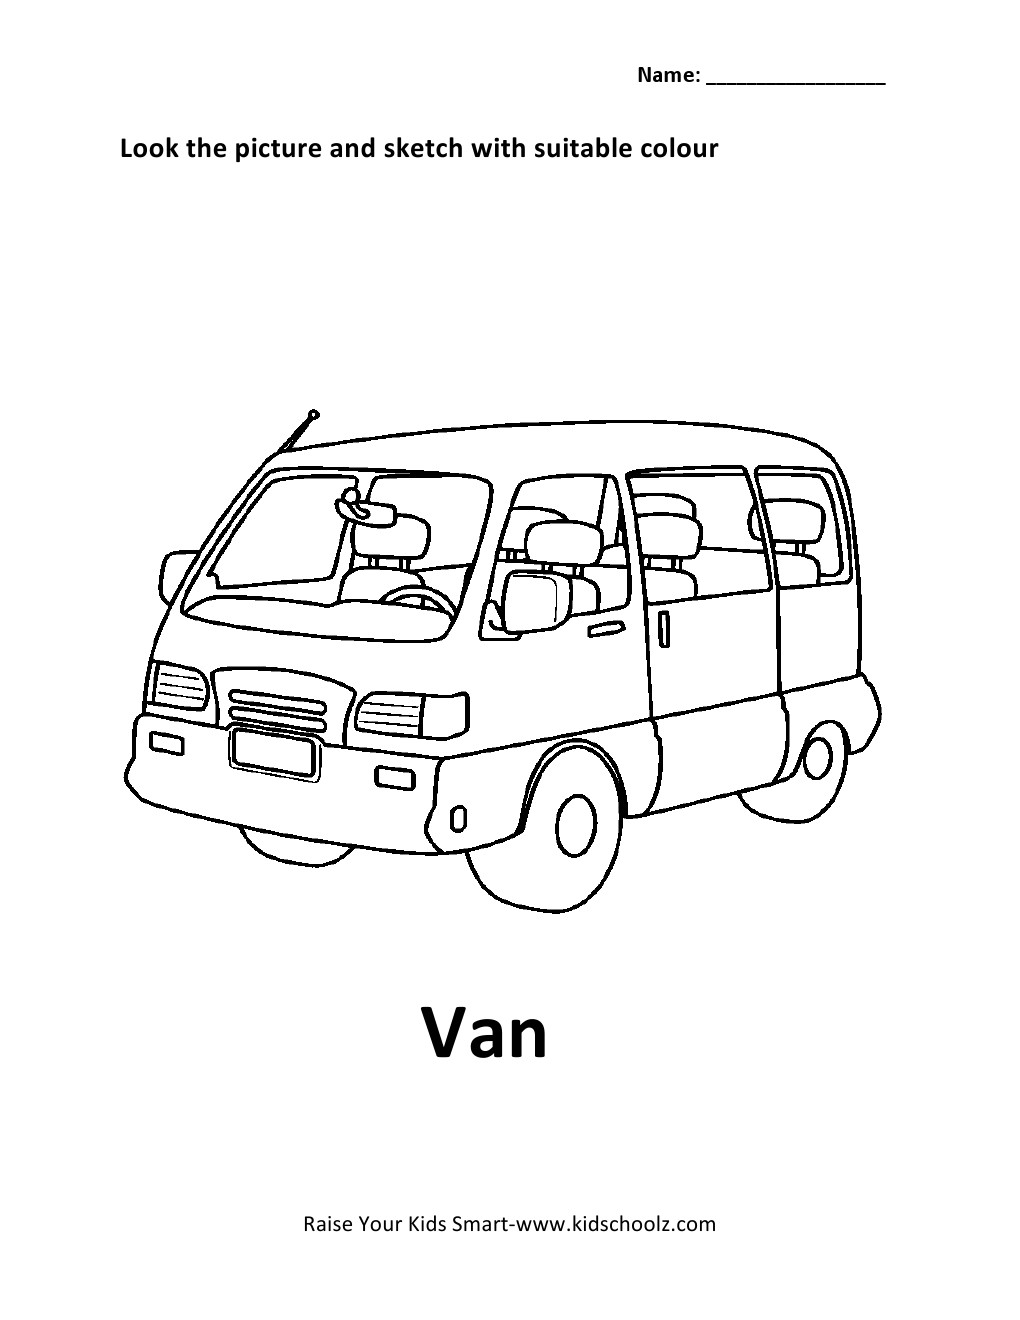 colouring pages van : Leave A Reply Cancel Reply